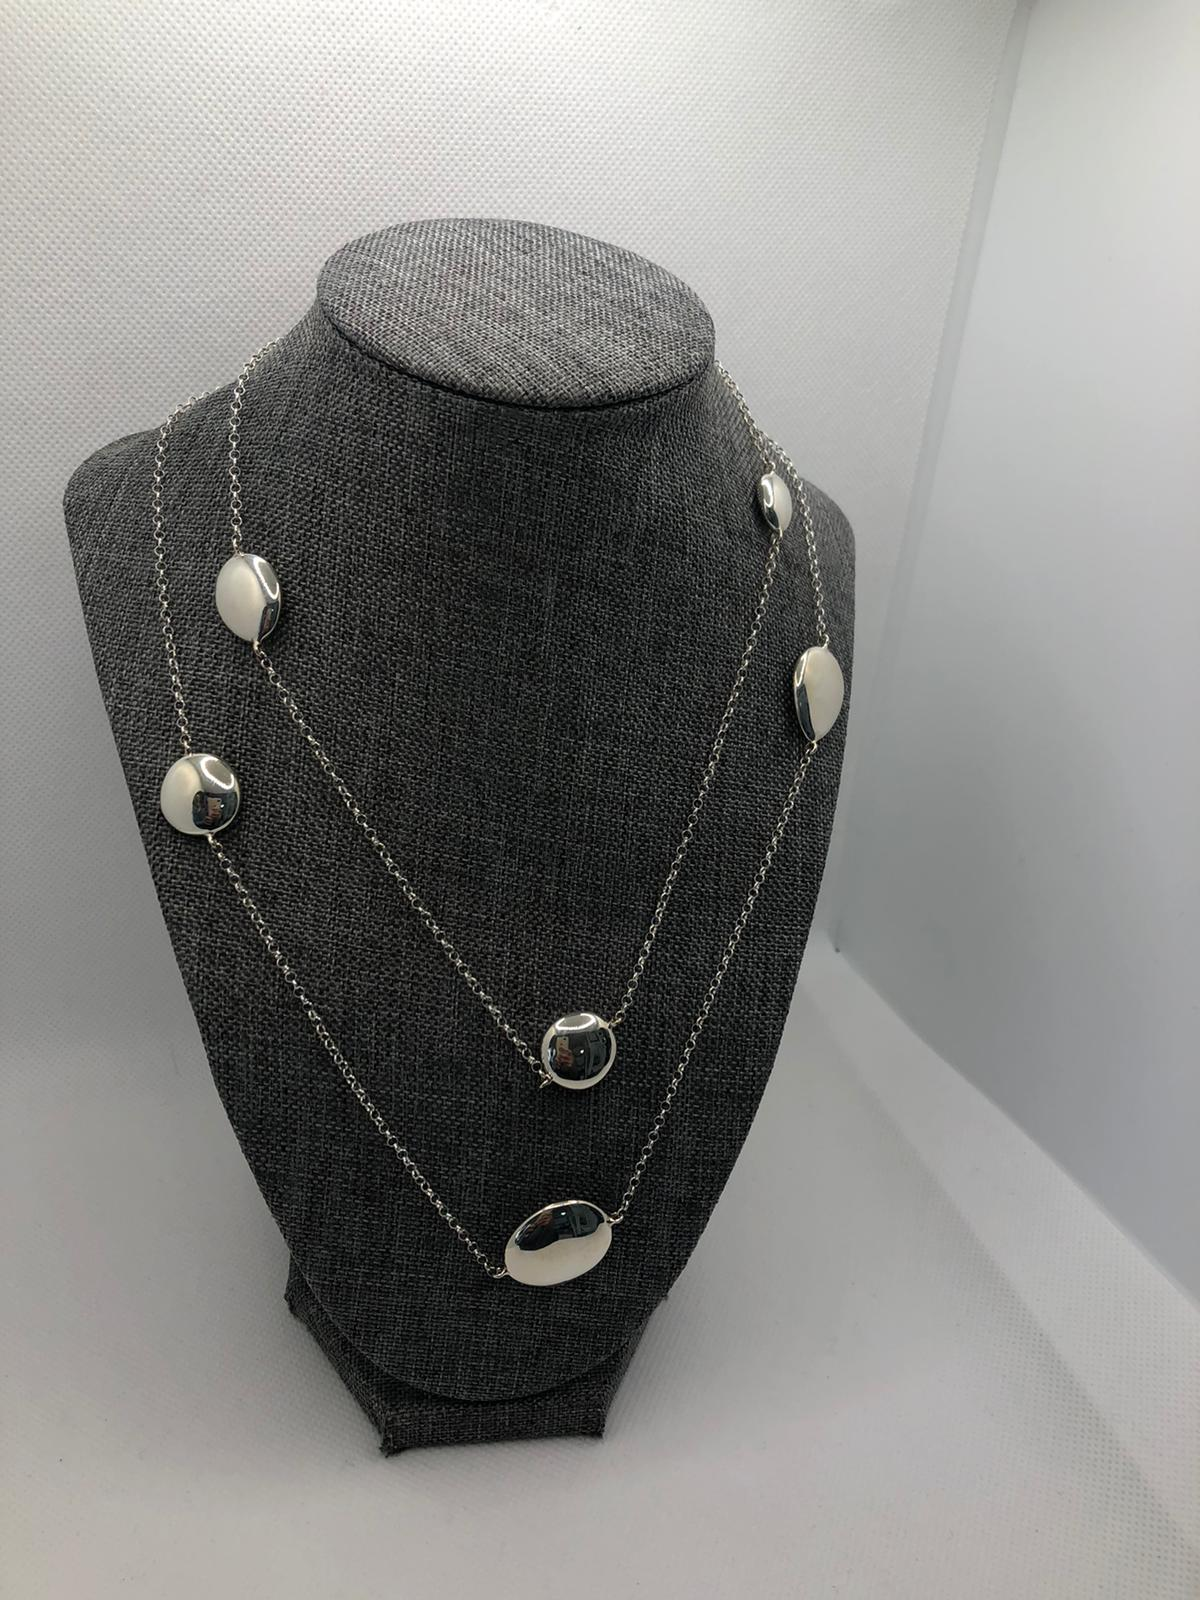 Polished Pebble Long Necklace, Sterling Silver by Chris Lewis